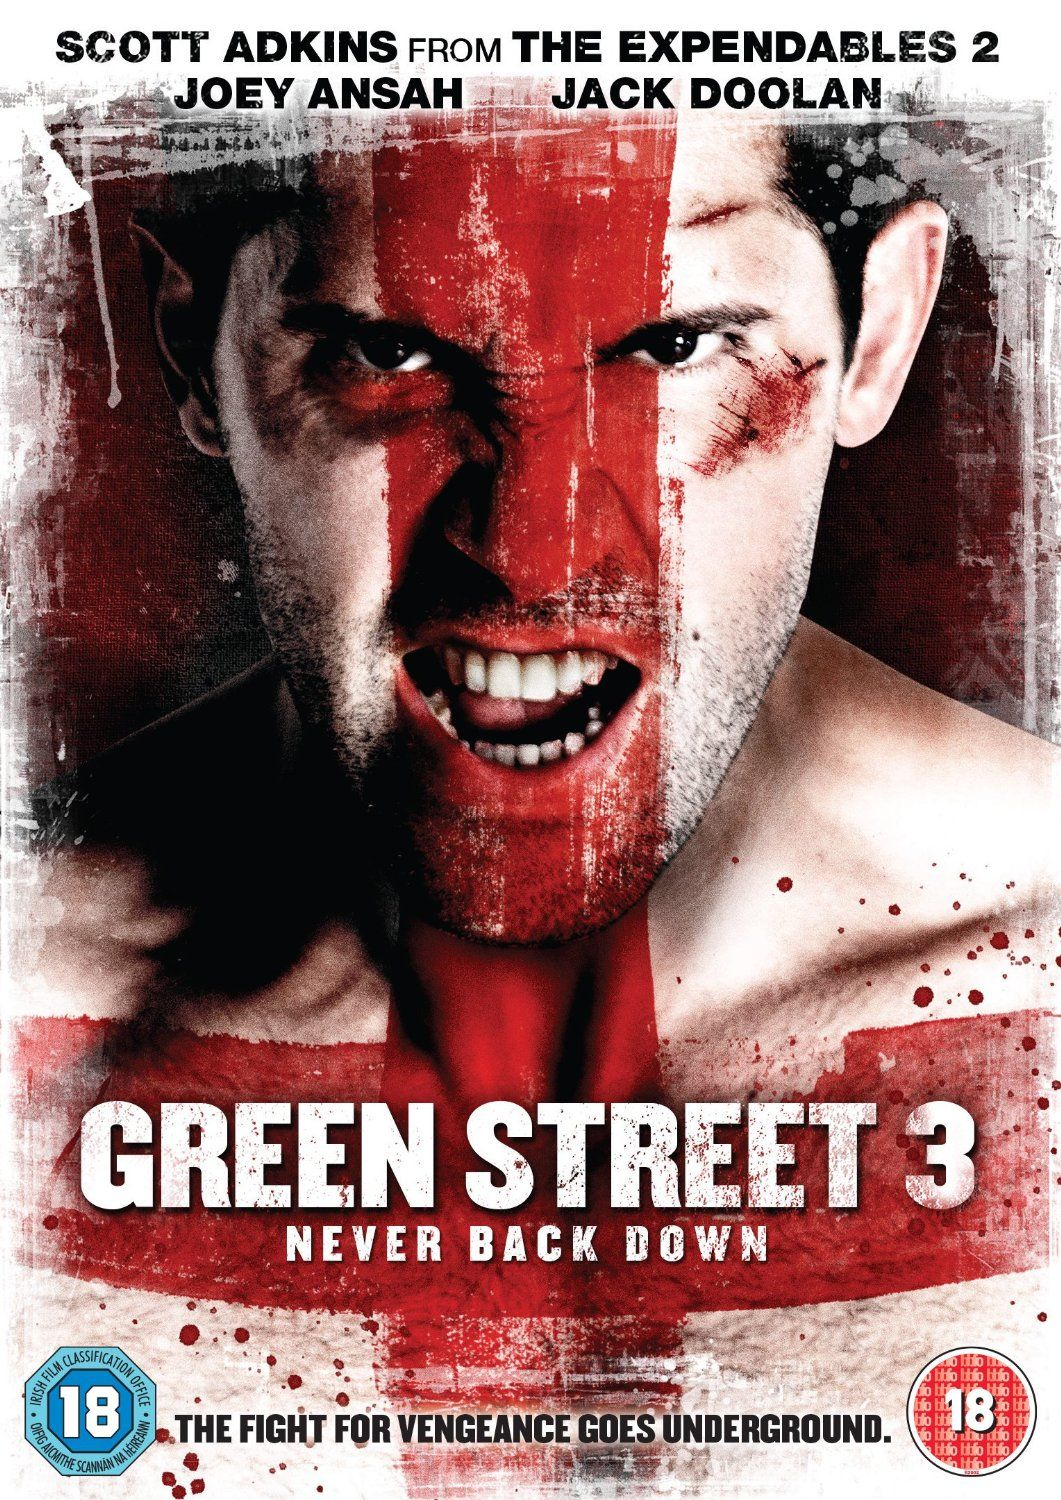 Hooligans 3 Green Street 3 Never Back Down Langue French Substitle French Genre Action Duree Green Street Never Back Down Full Movies Online Free